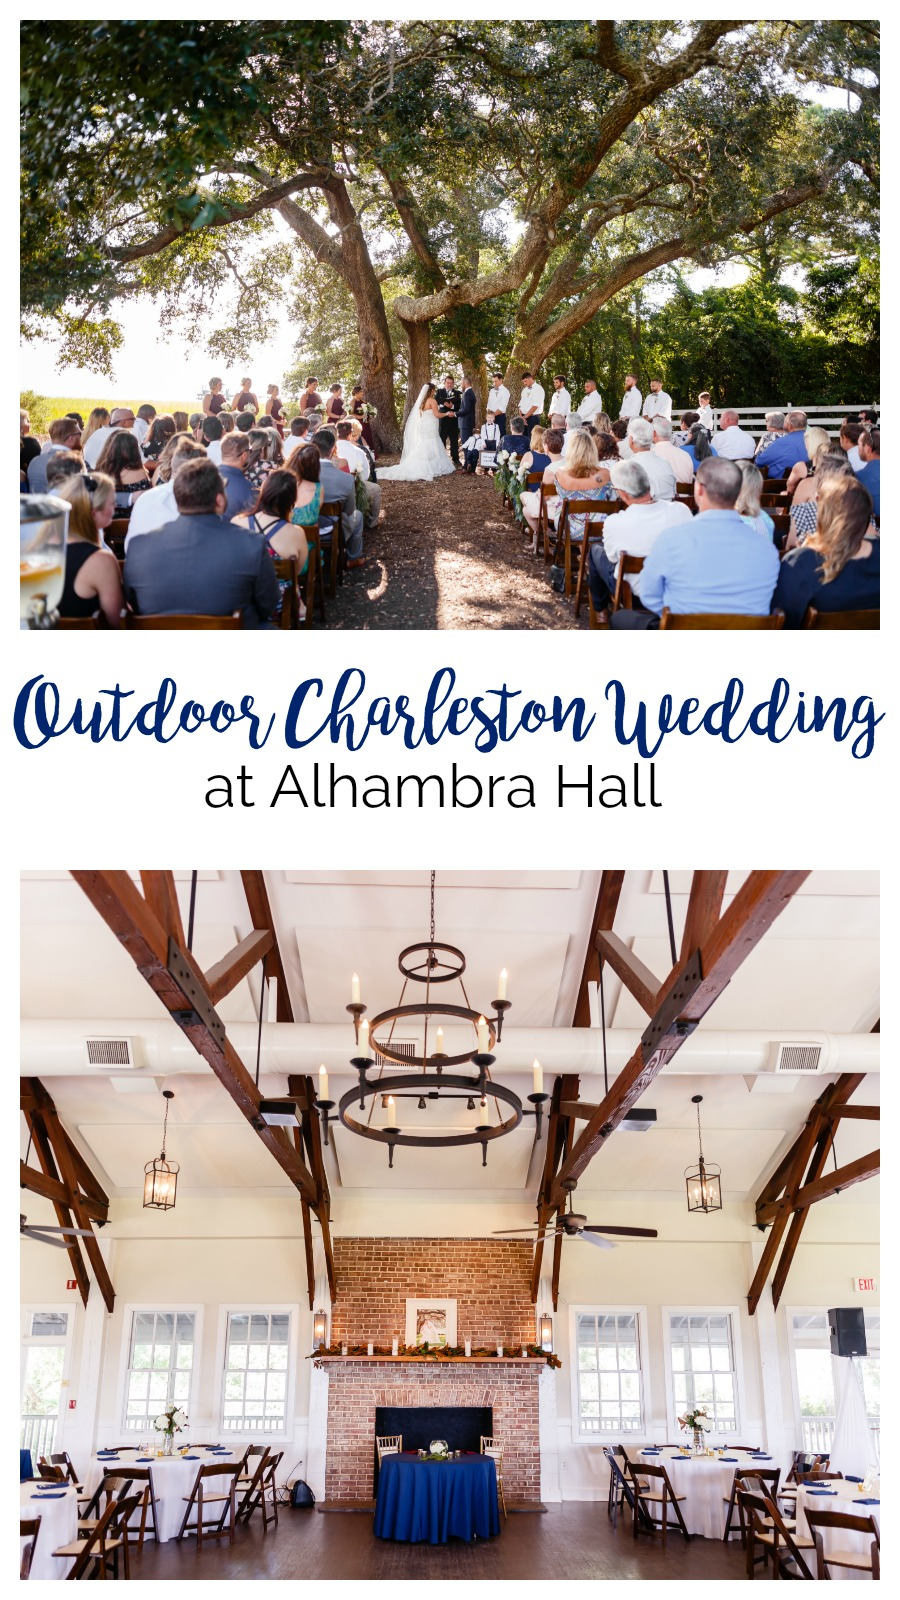 Taylor and Bobby: Celebration a Strong Family Bond at Alhambra Hall Wedding | Palmetto State Weddings | Cory Lee Photography | outdoor Charleston wedding | Southern wedding | wedding after loss | best wedding kids table